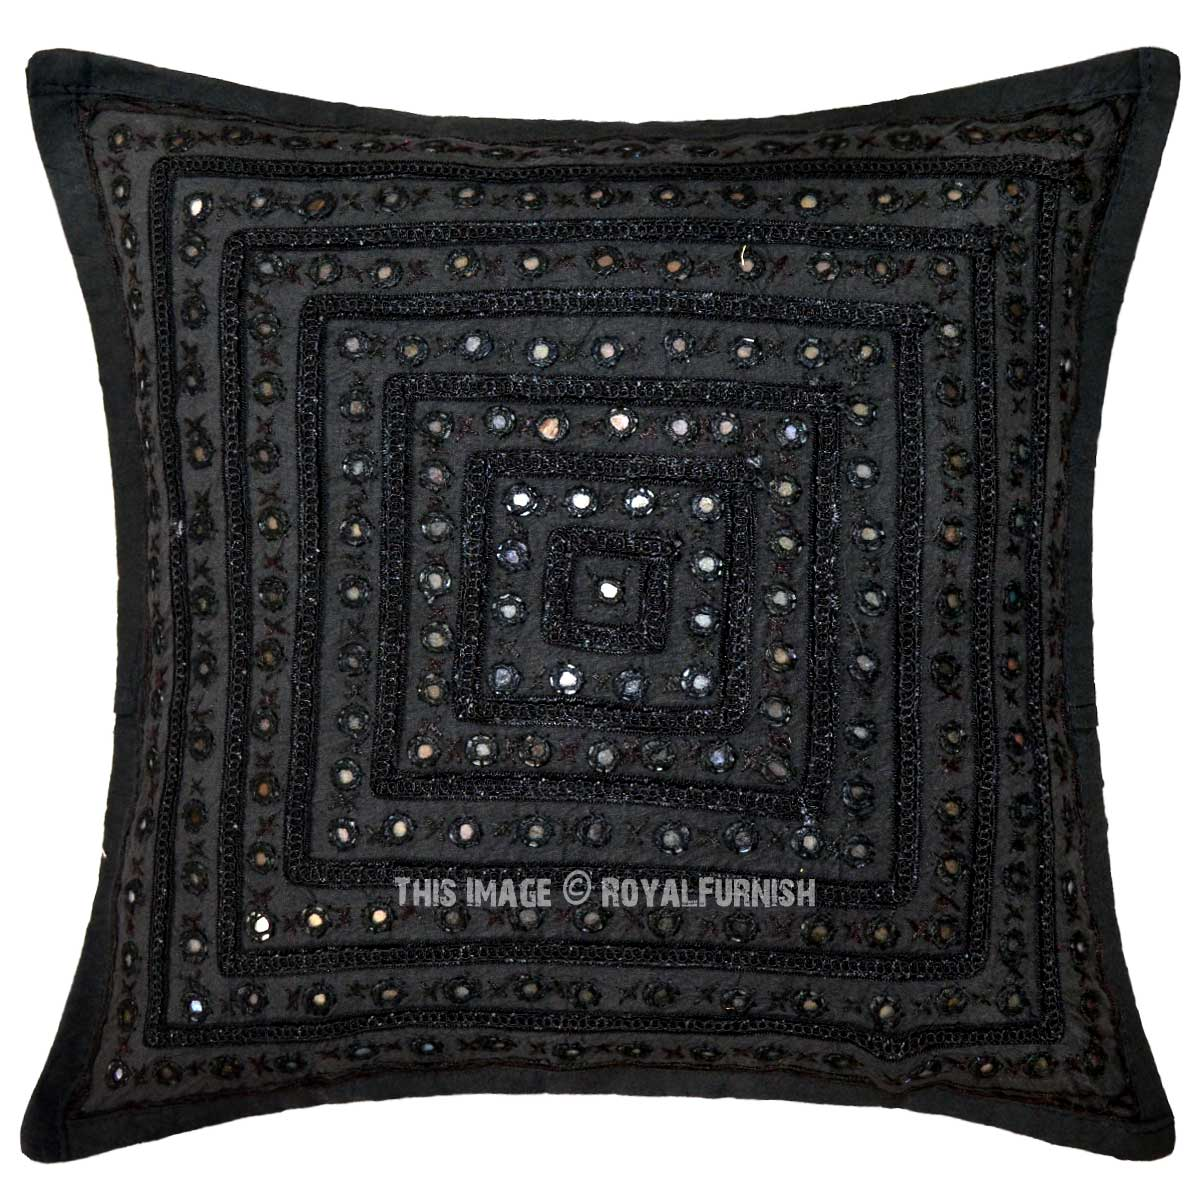 Unique Decorative Pillows For Couch : Black Decorative Unique Mirrored Embroidered Throw Pillow Cover 16X16 Inch - RoyalFurnish.com